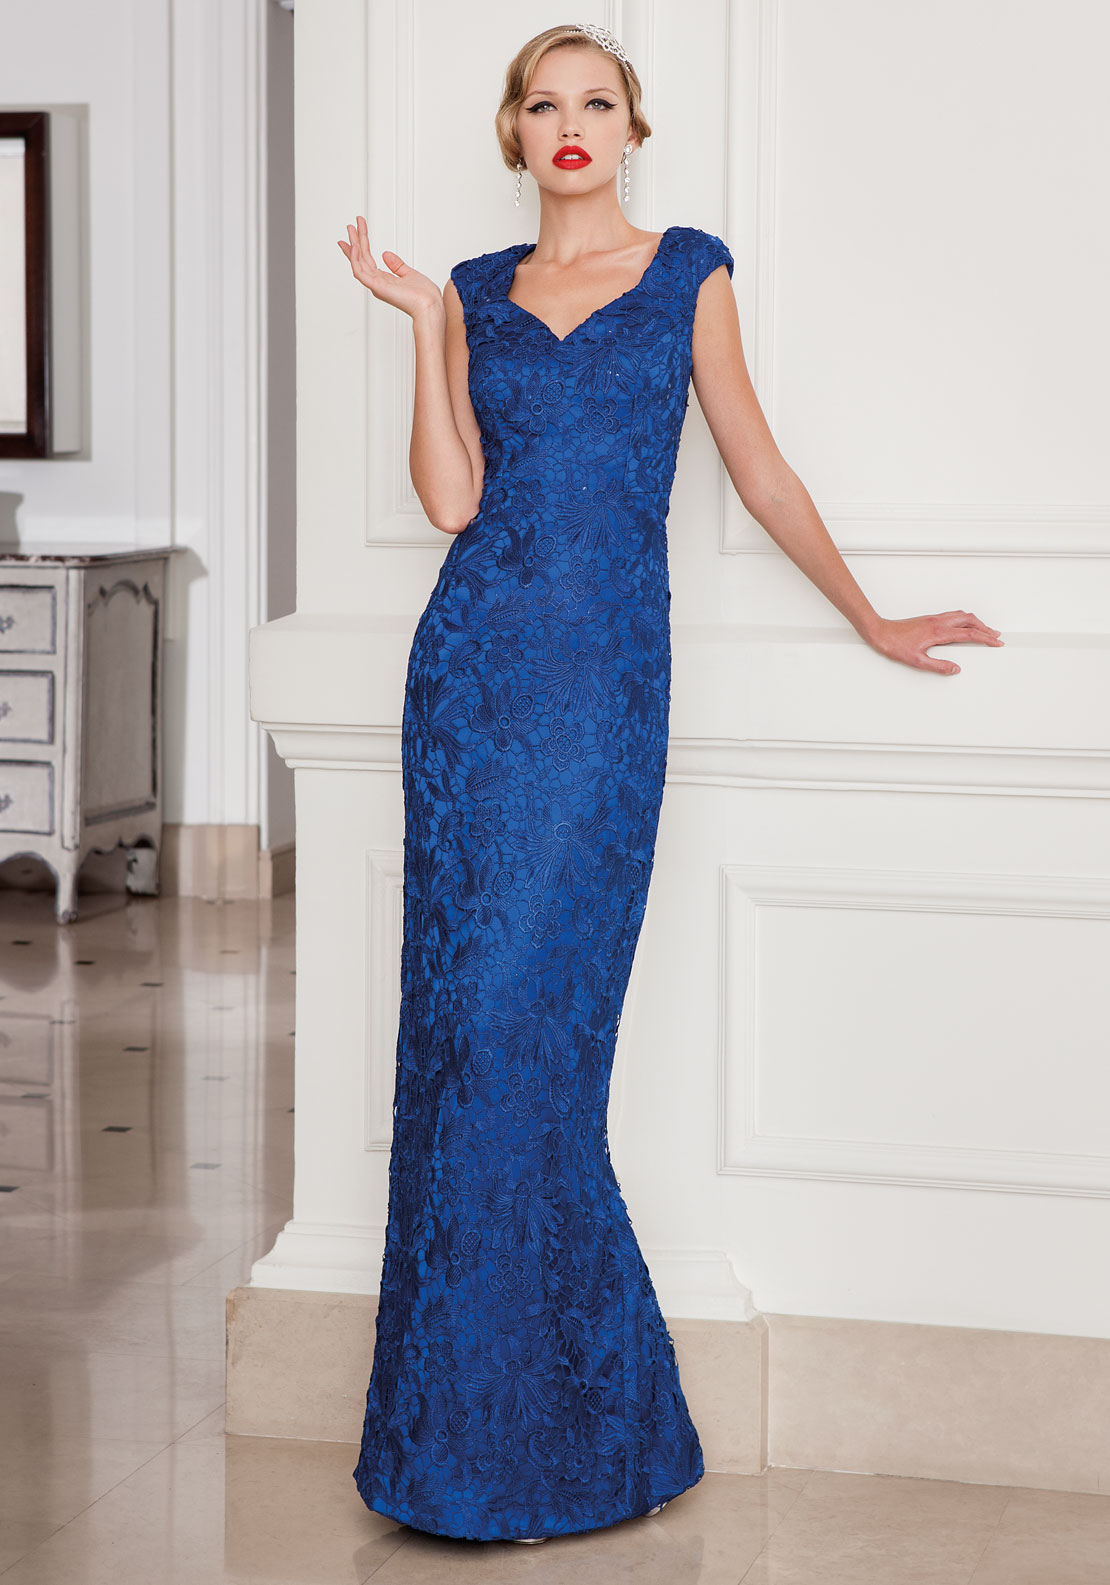 Sonia Pena 1160012 Royal Blue Floor Length Lace Dress